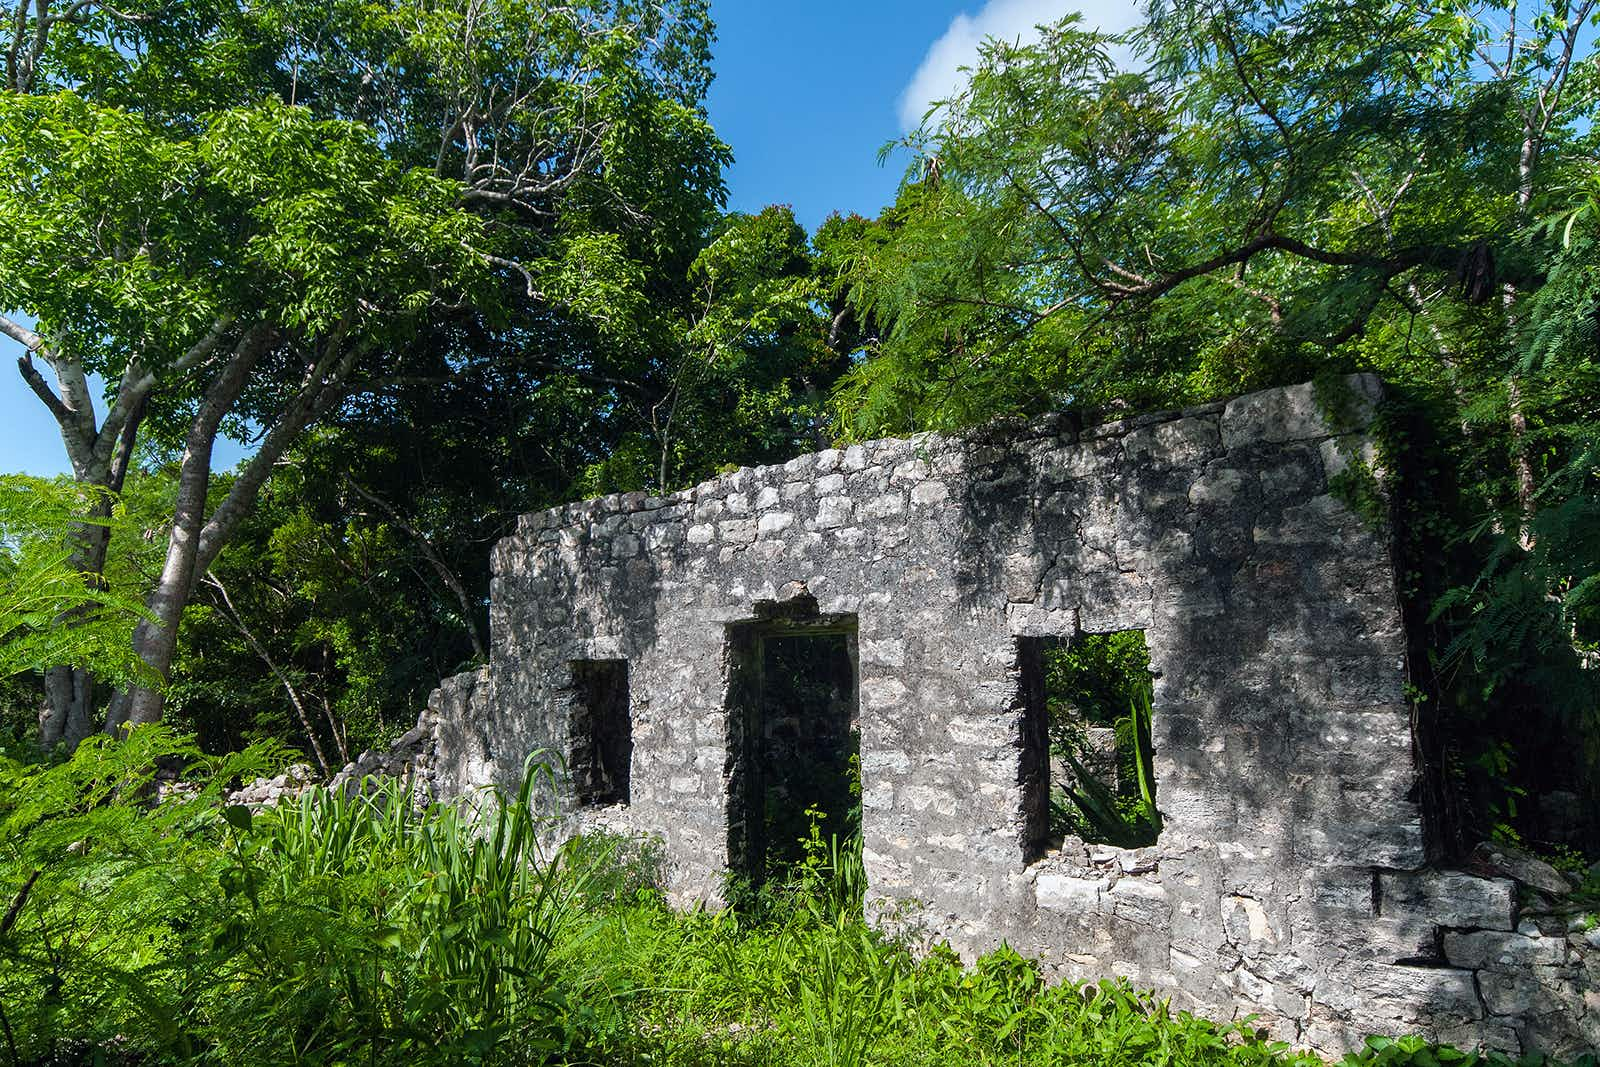 Discovering the history and culture of Turks & Caicos